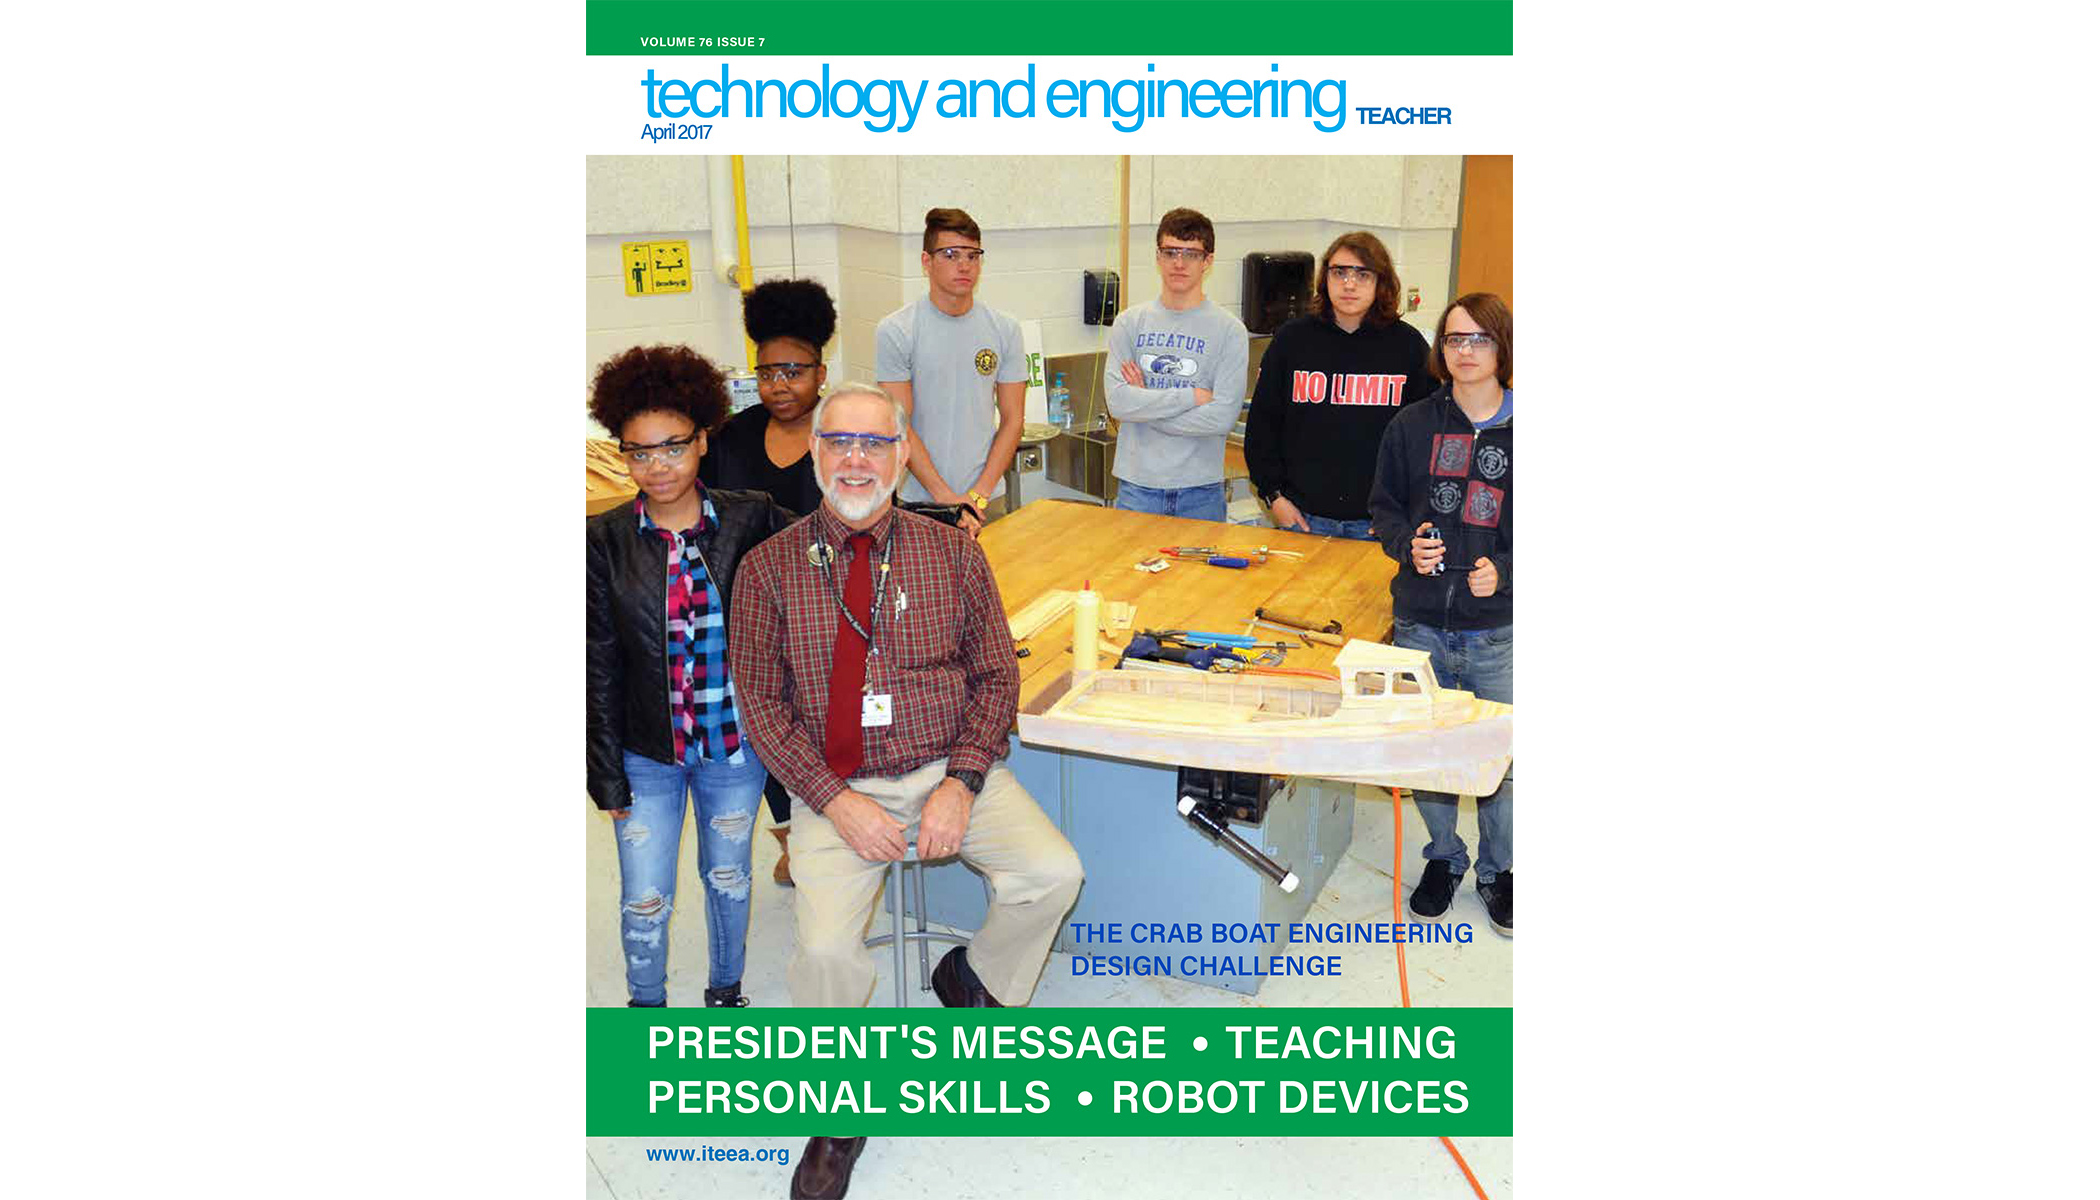 Here's a sampling of what's available in the April 2017 issue of Technology and Engineering Teacher